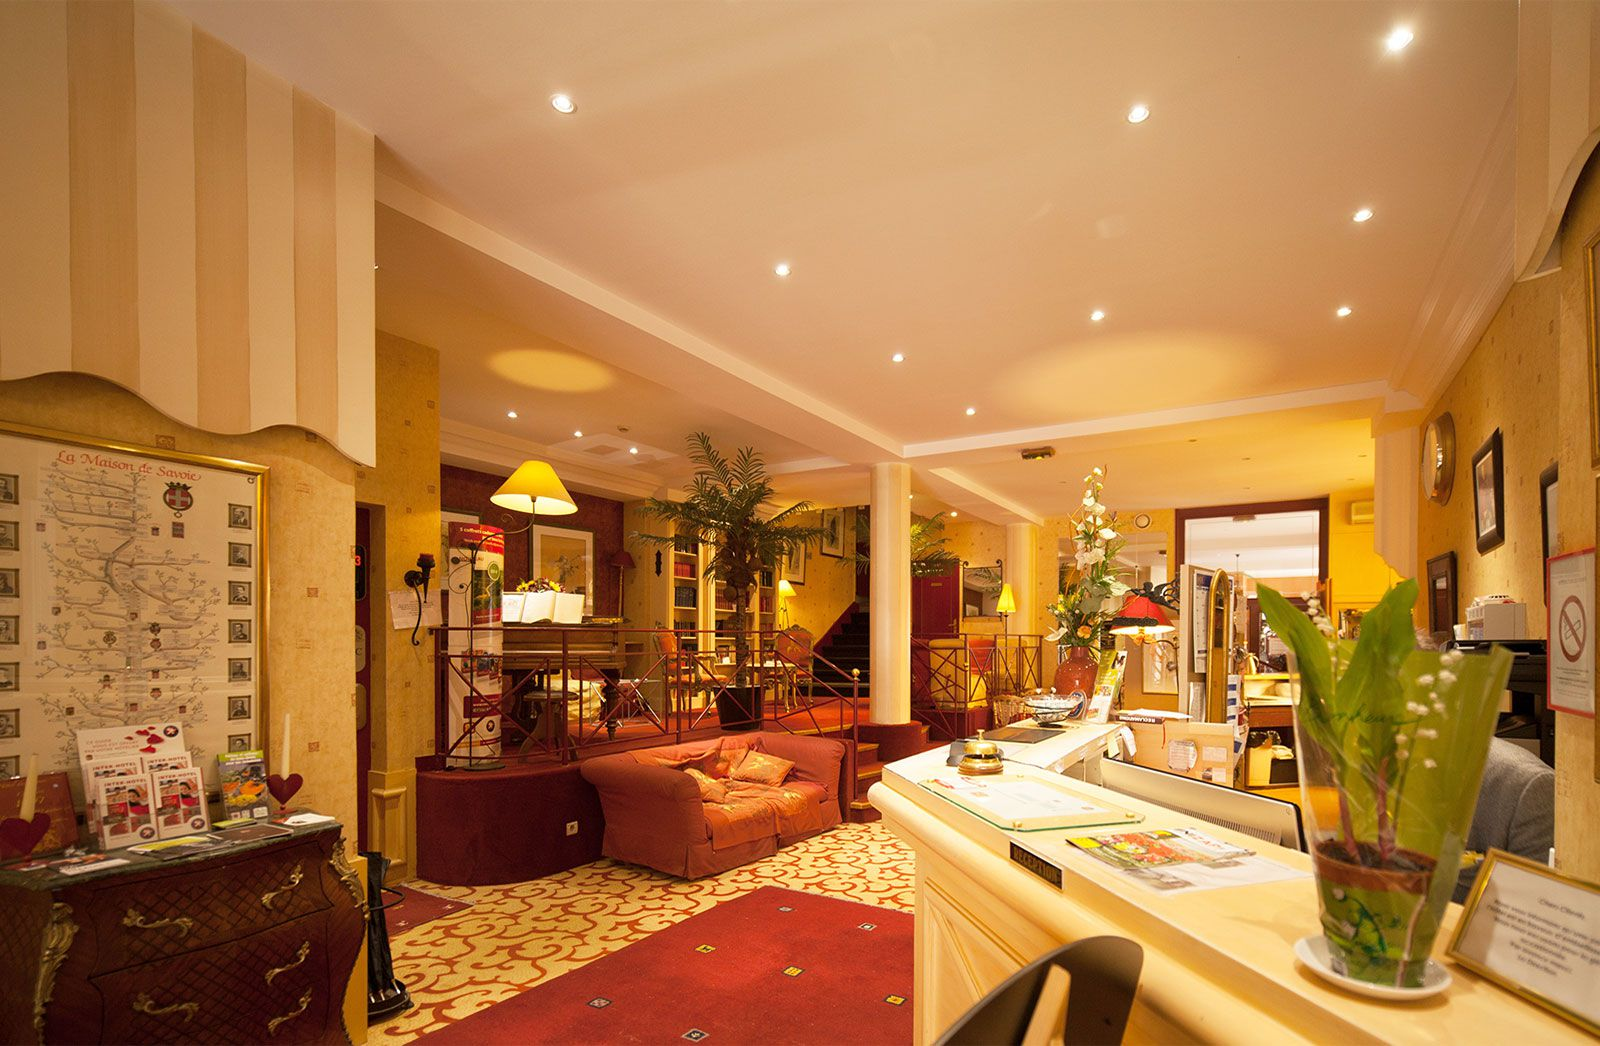 Chambery Hotel des Princes